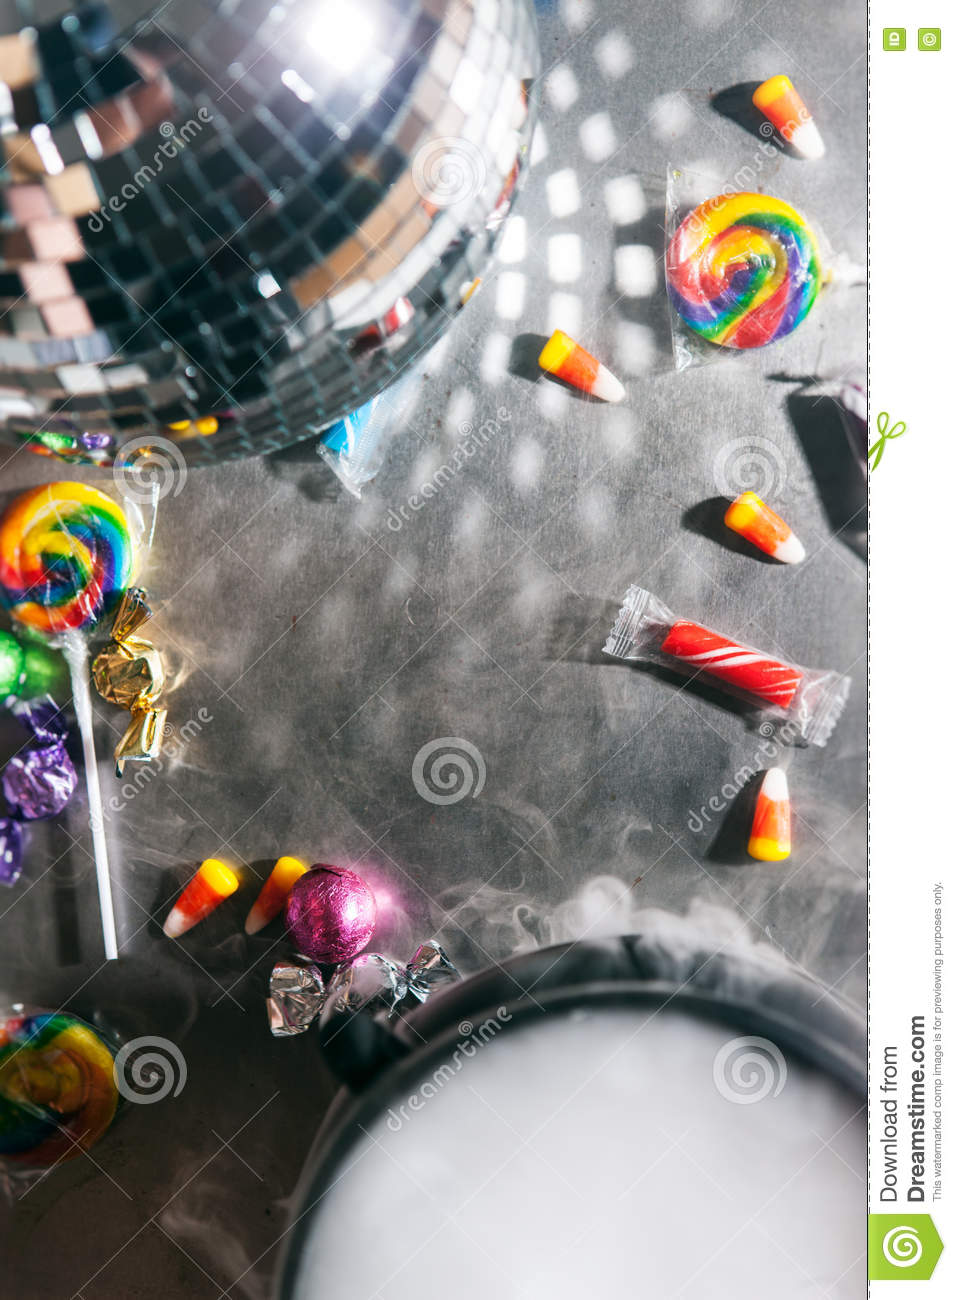 halloween candy and party background with open space in center